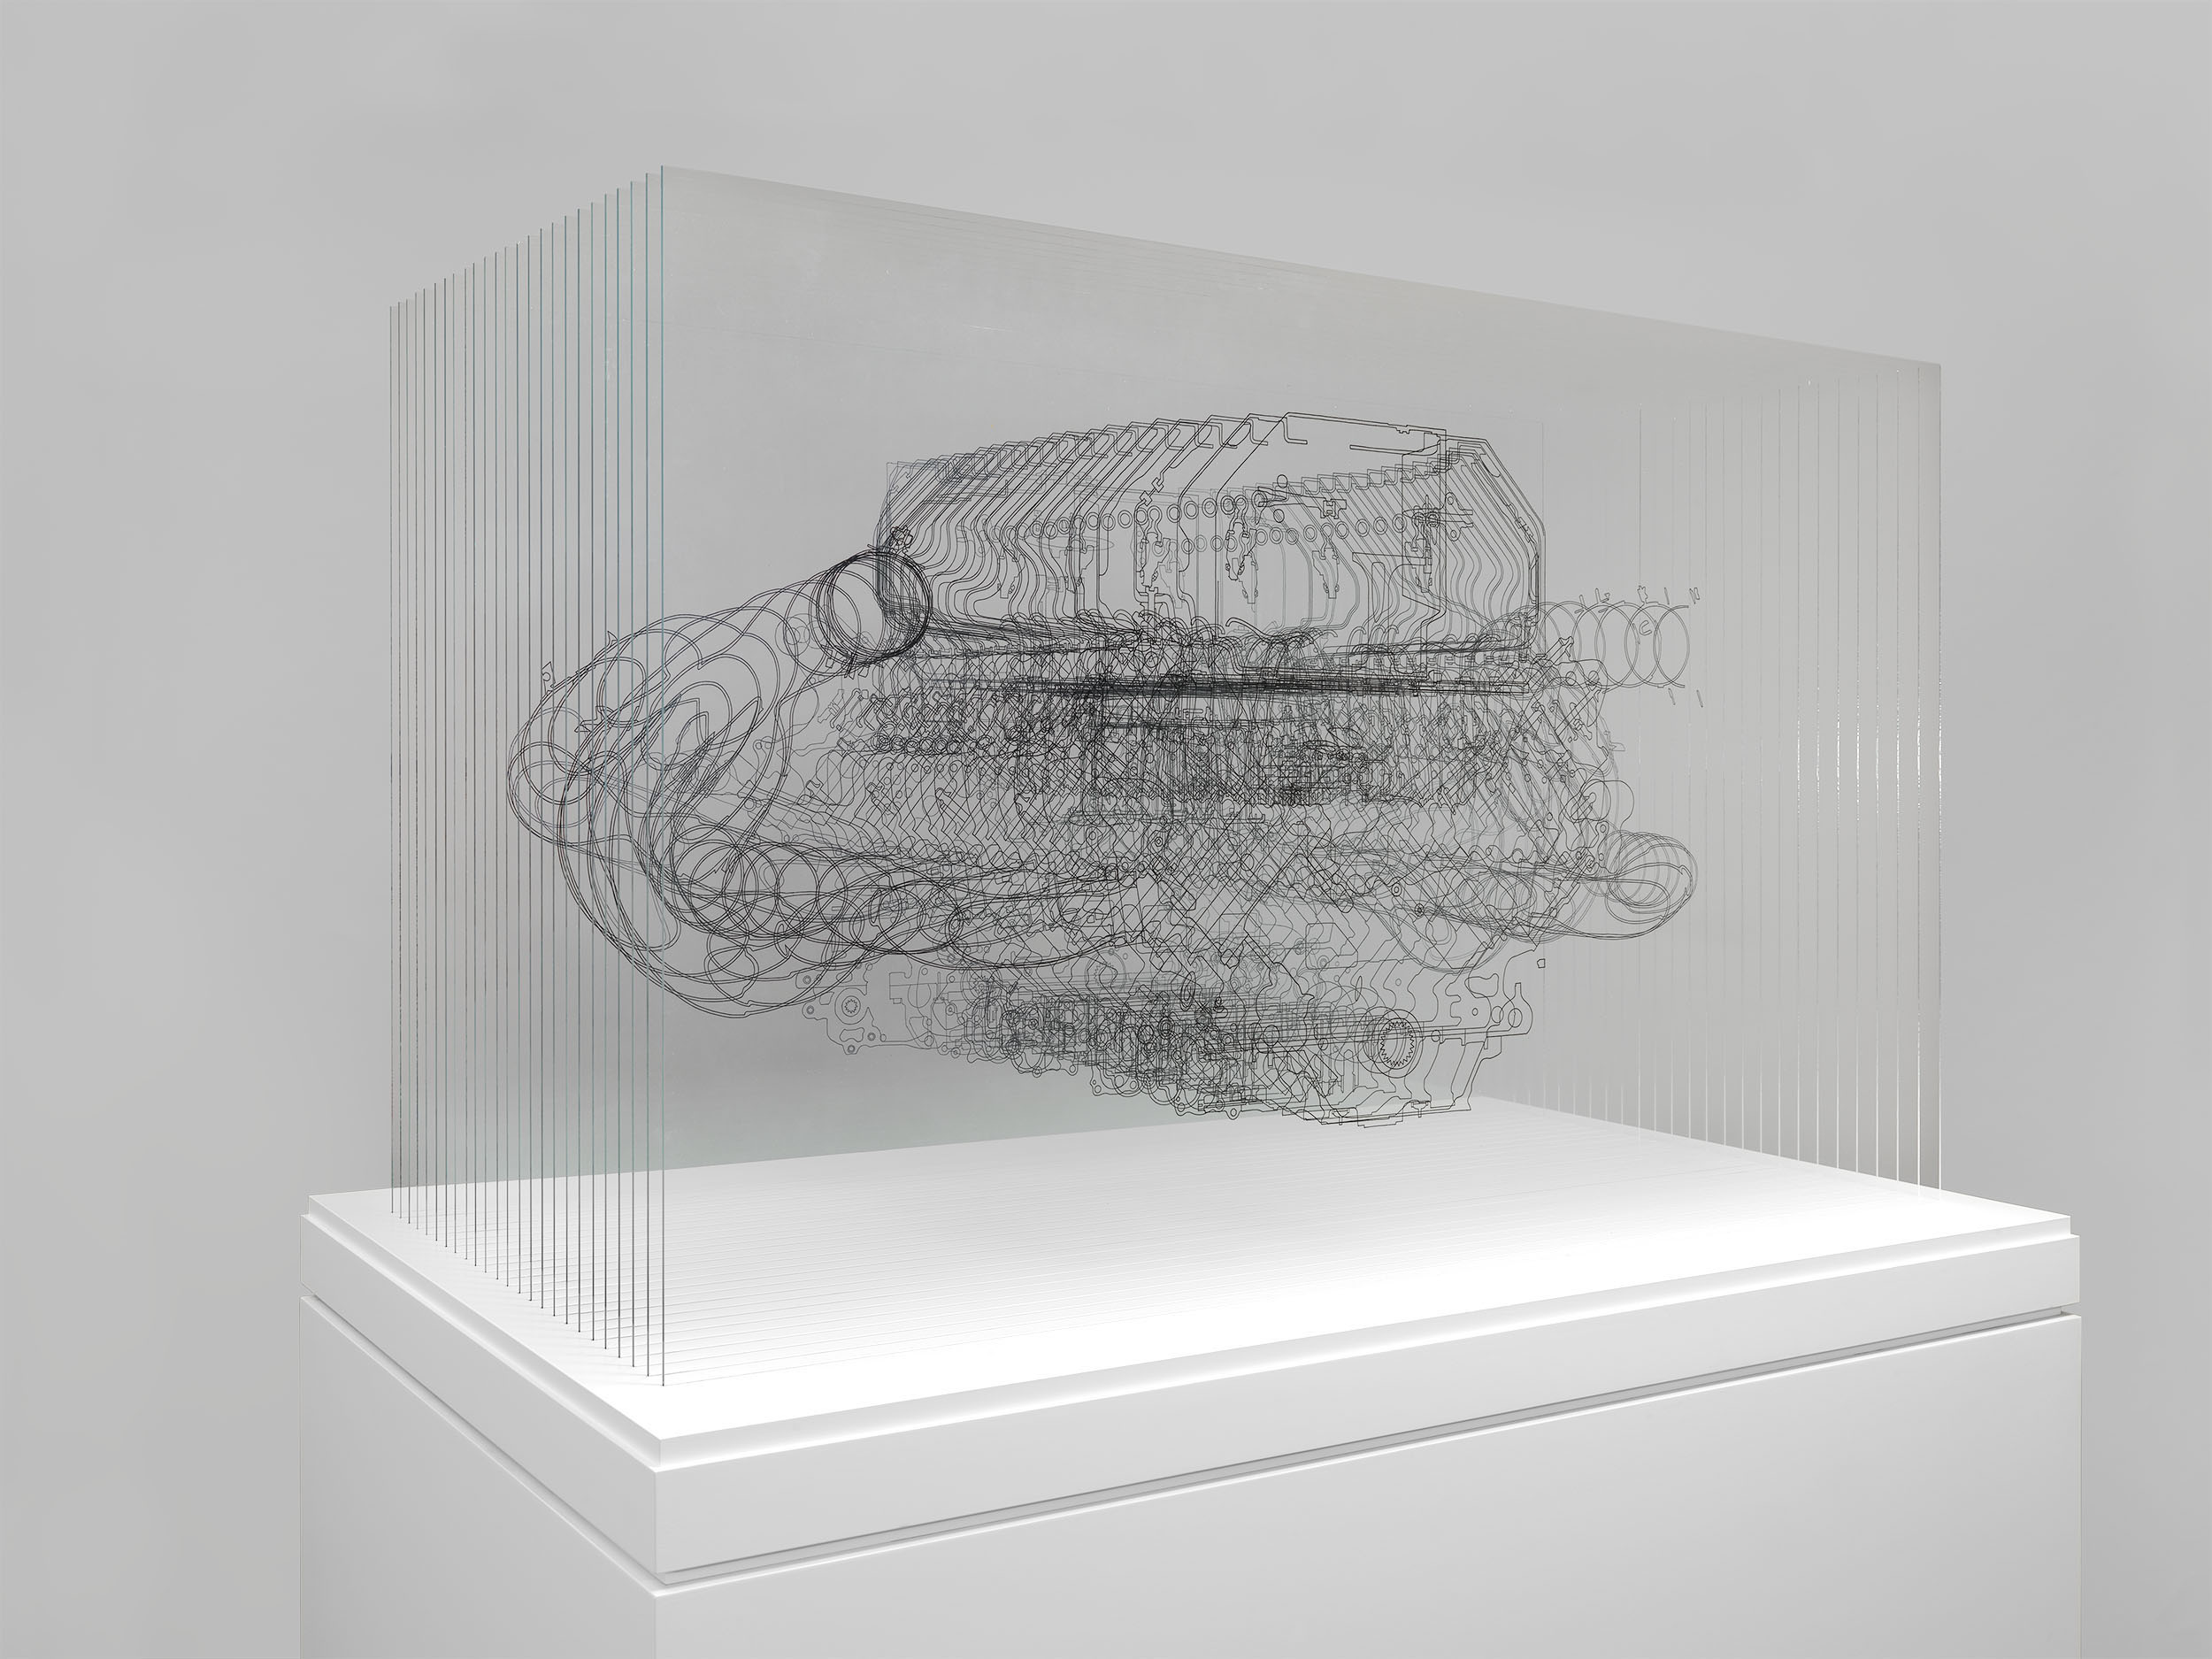 Angela Palmer - Adrenalin - V8 Engine, Ink drawing on 25 sheets of Mirogard glass, 75 x 119 x 72 cm (expo)